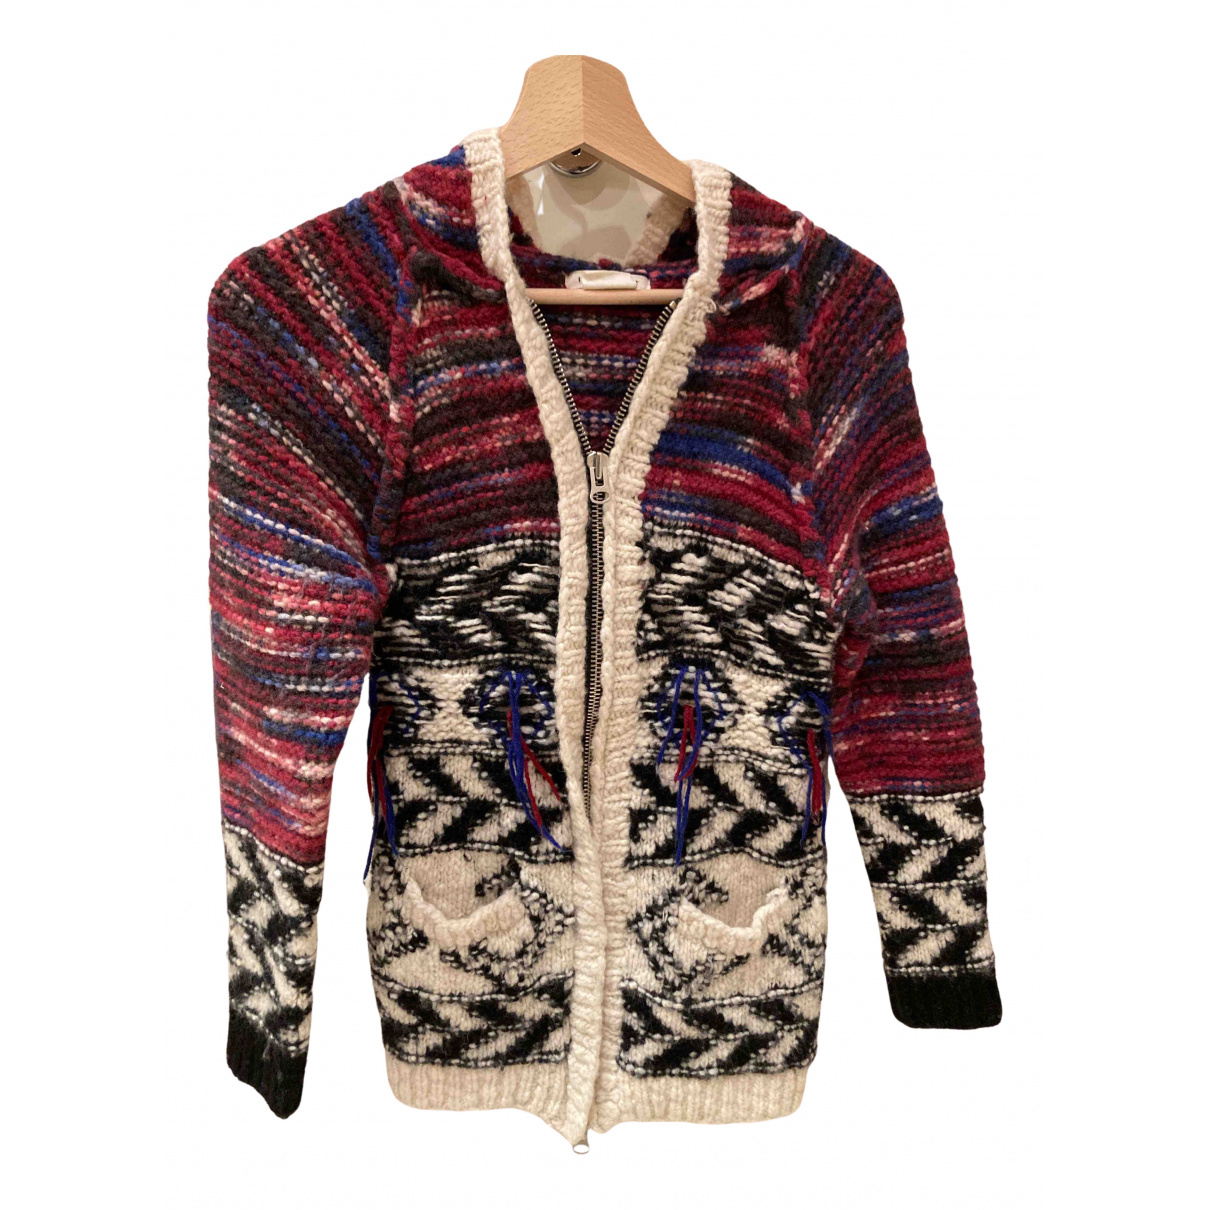 Isabel Marant Pour H&m N Multicolour Wool Knitwear for Women 32 FR